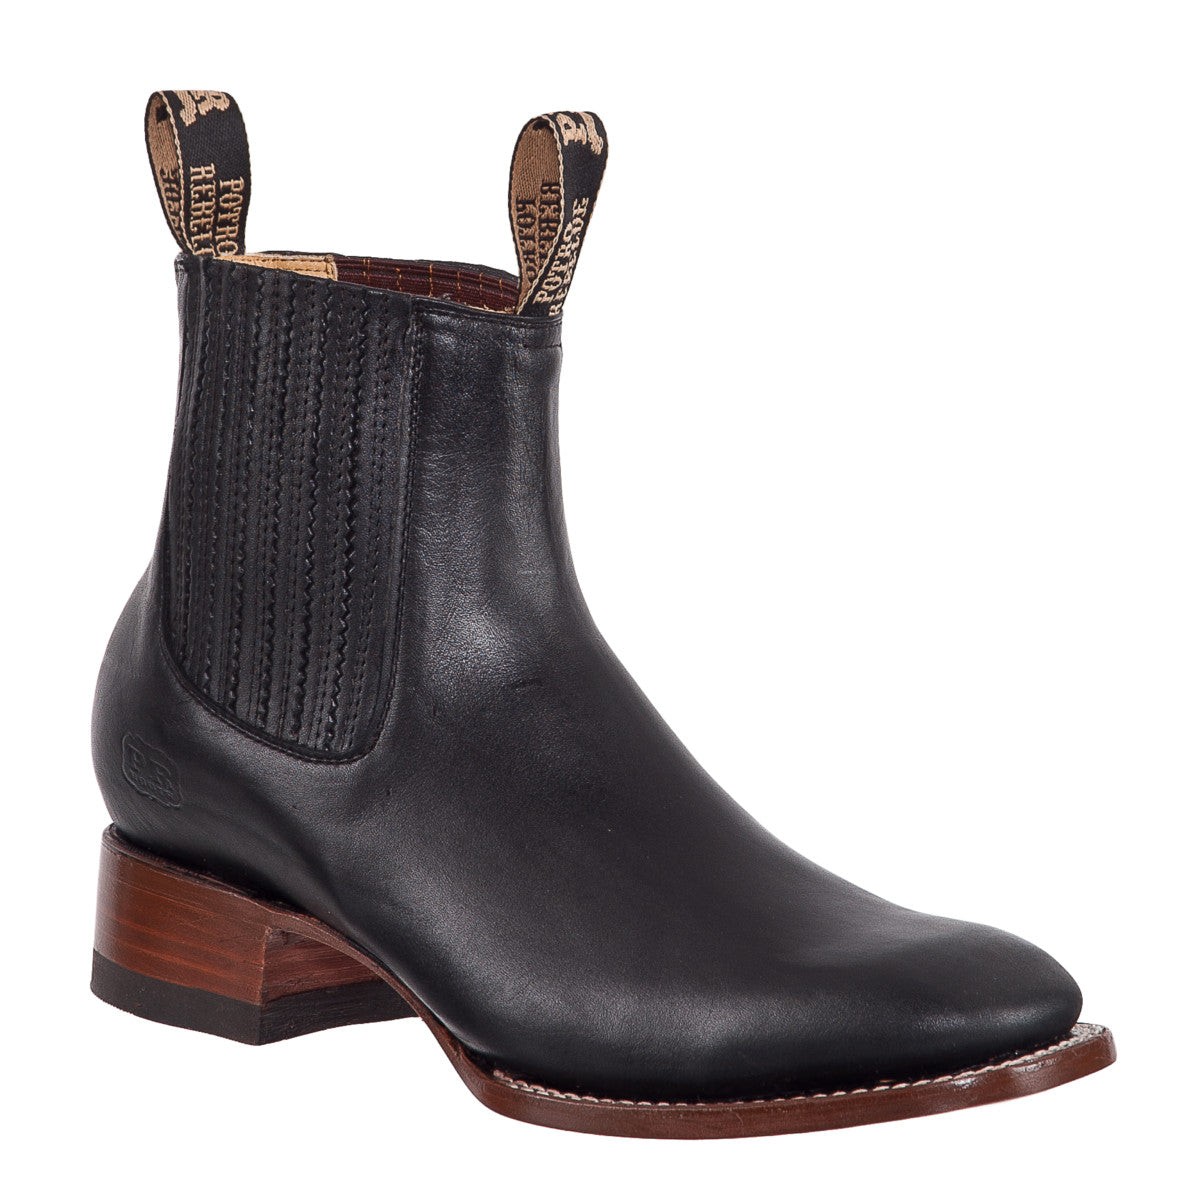 Rodeo Toe Leather Short Boot for Kids